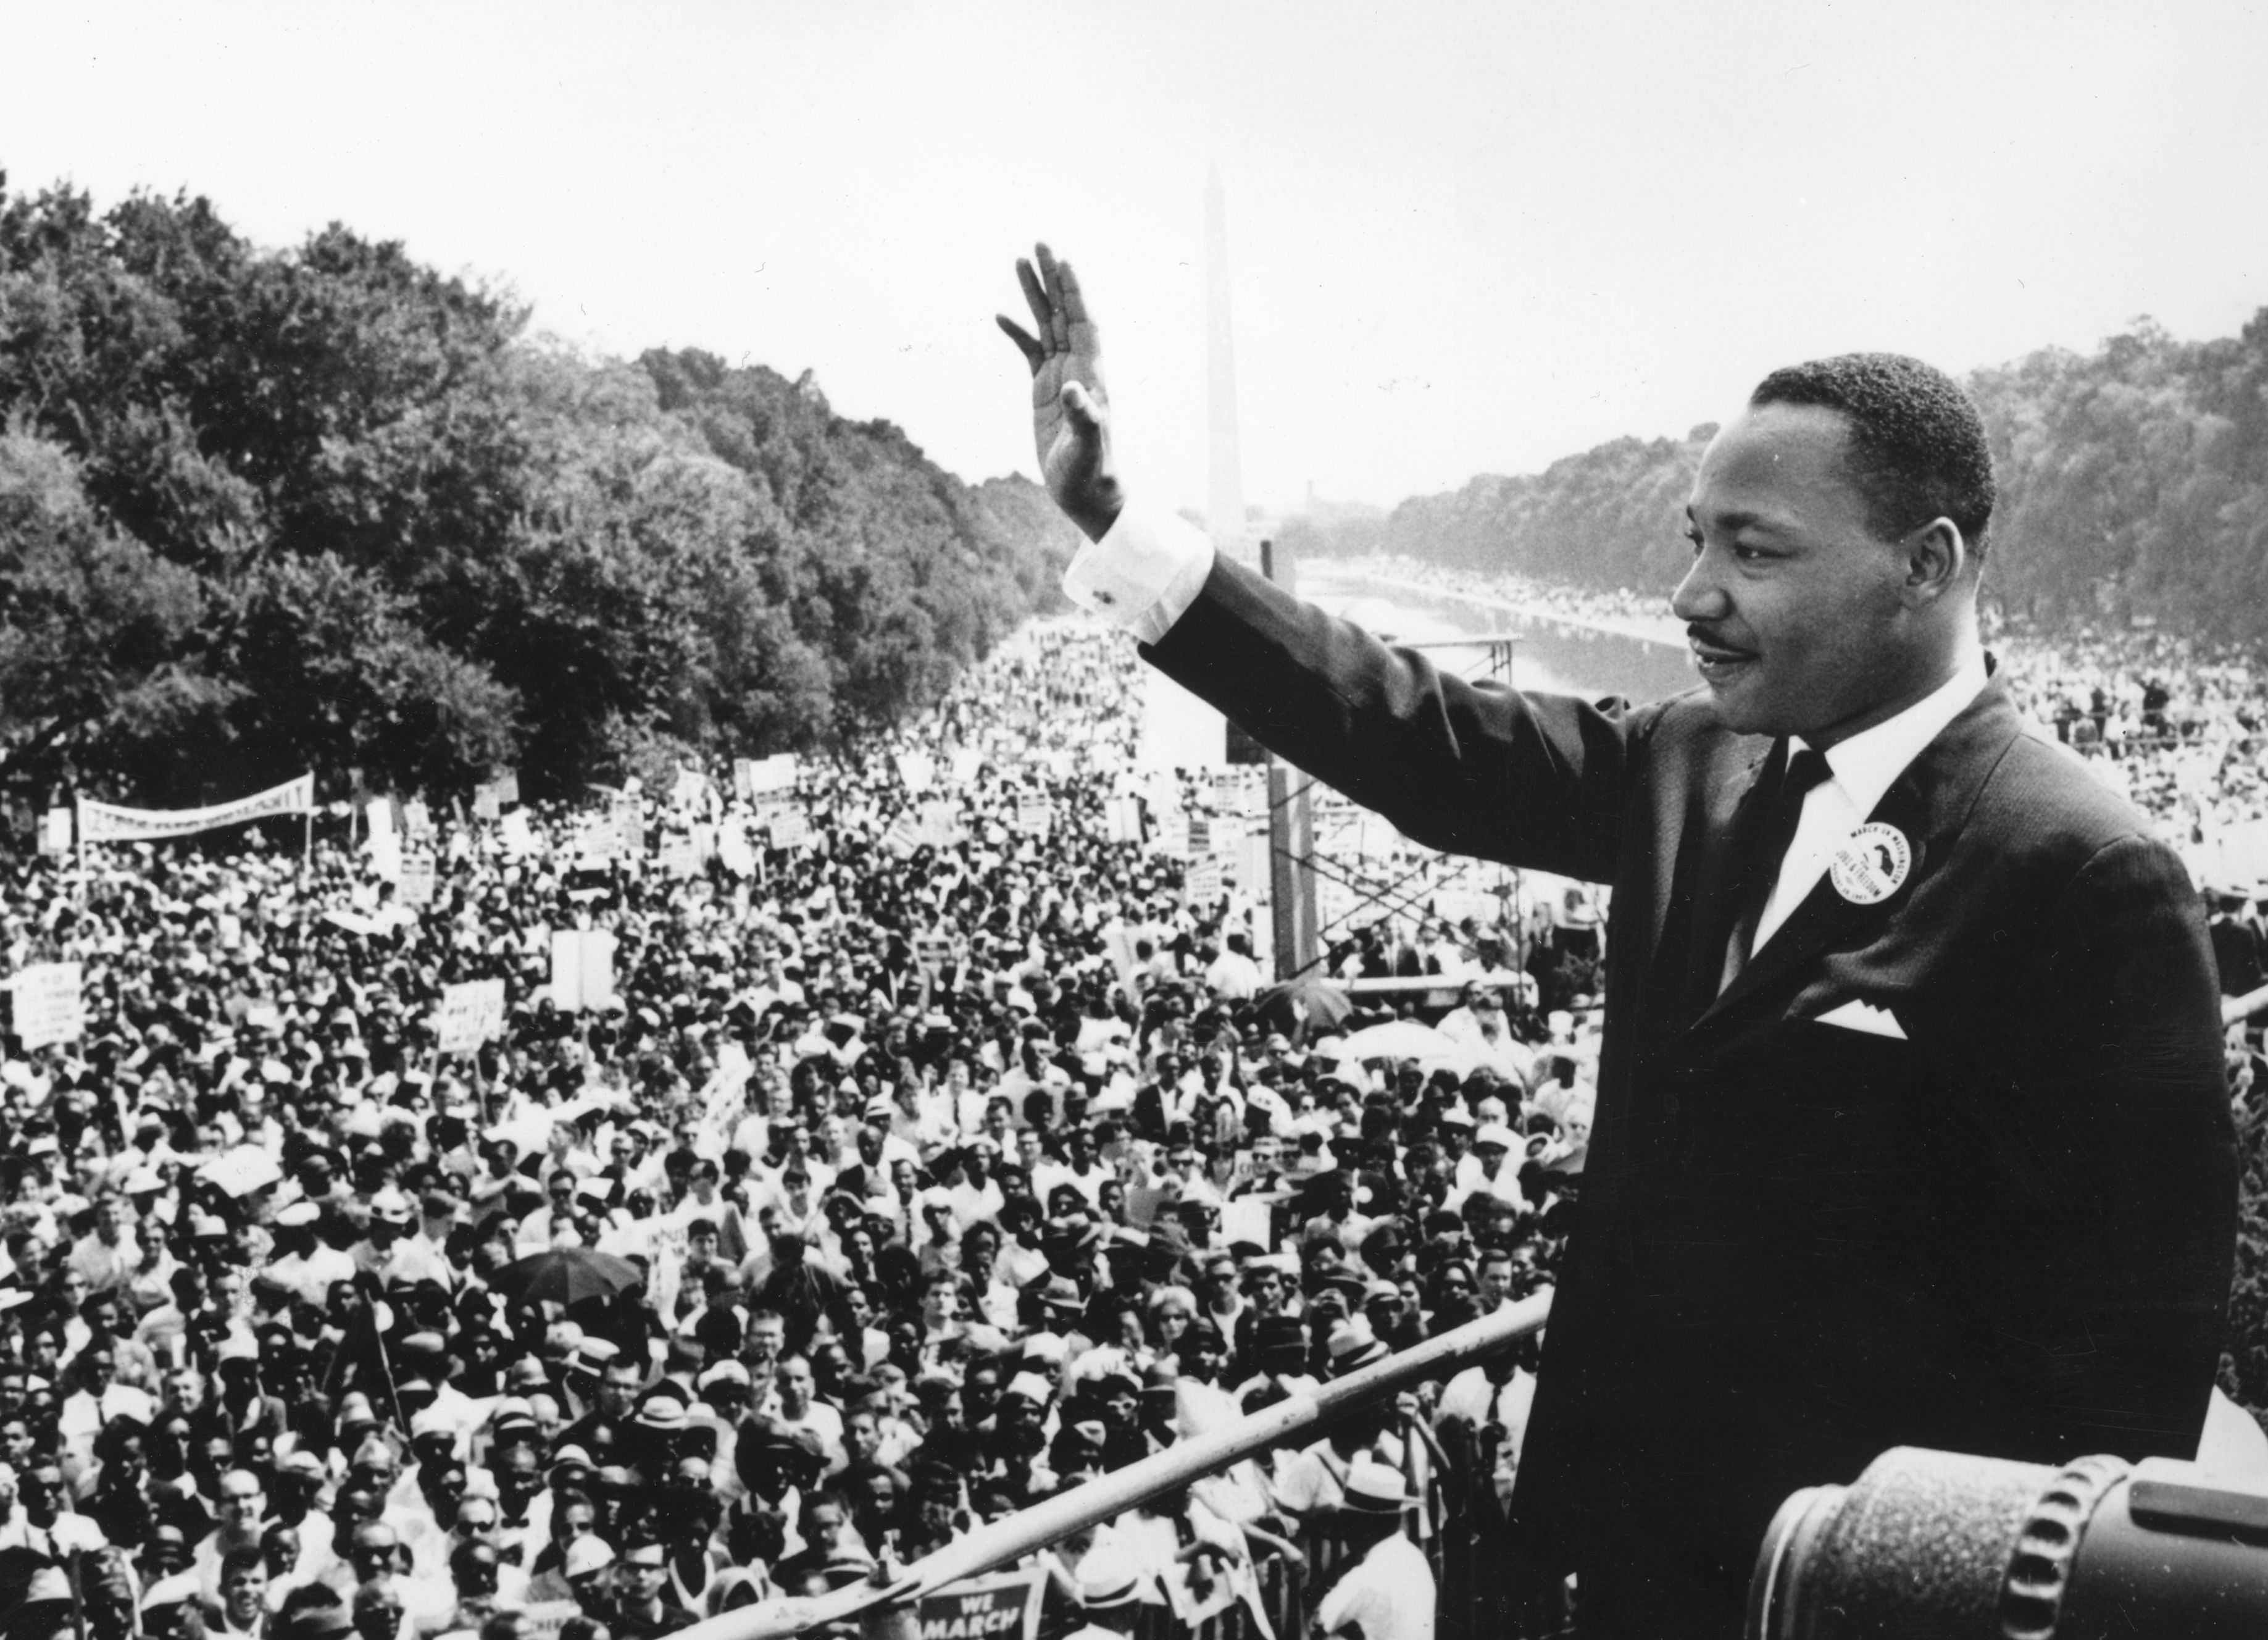 Honoring Dr. Martin Luther King Jr. Through Service